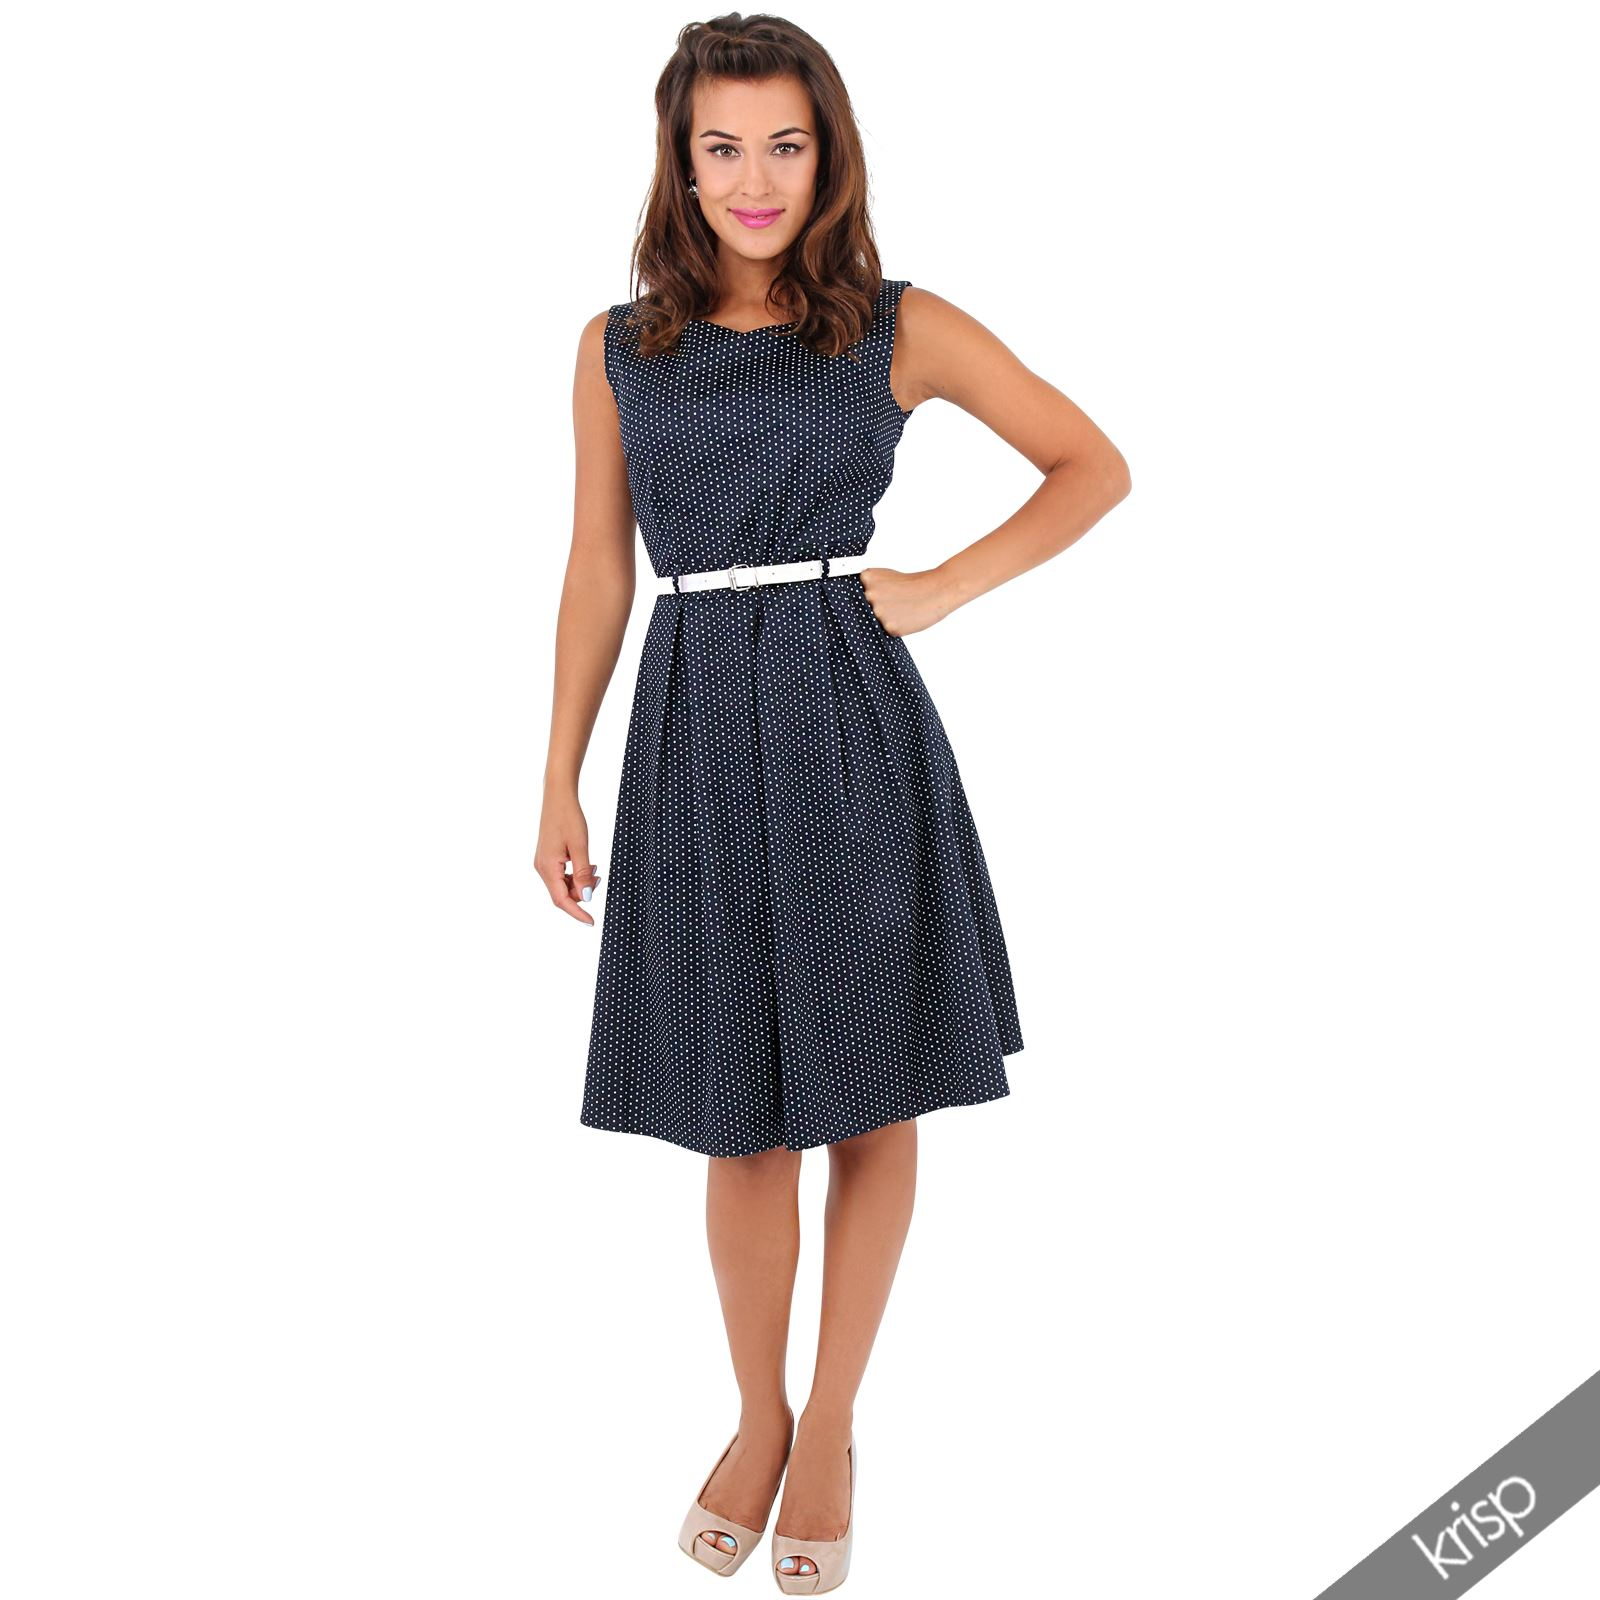 Womens-Vintage-50s-Pin-Up-Polka-Dot-Dress-Flared-Midi-Swing-Skater-Skirt-Party thumbnail 10